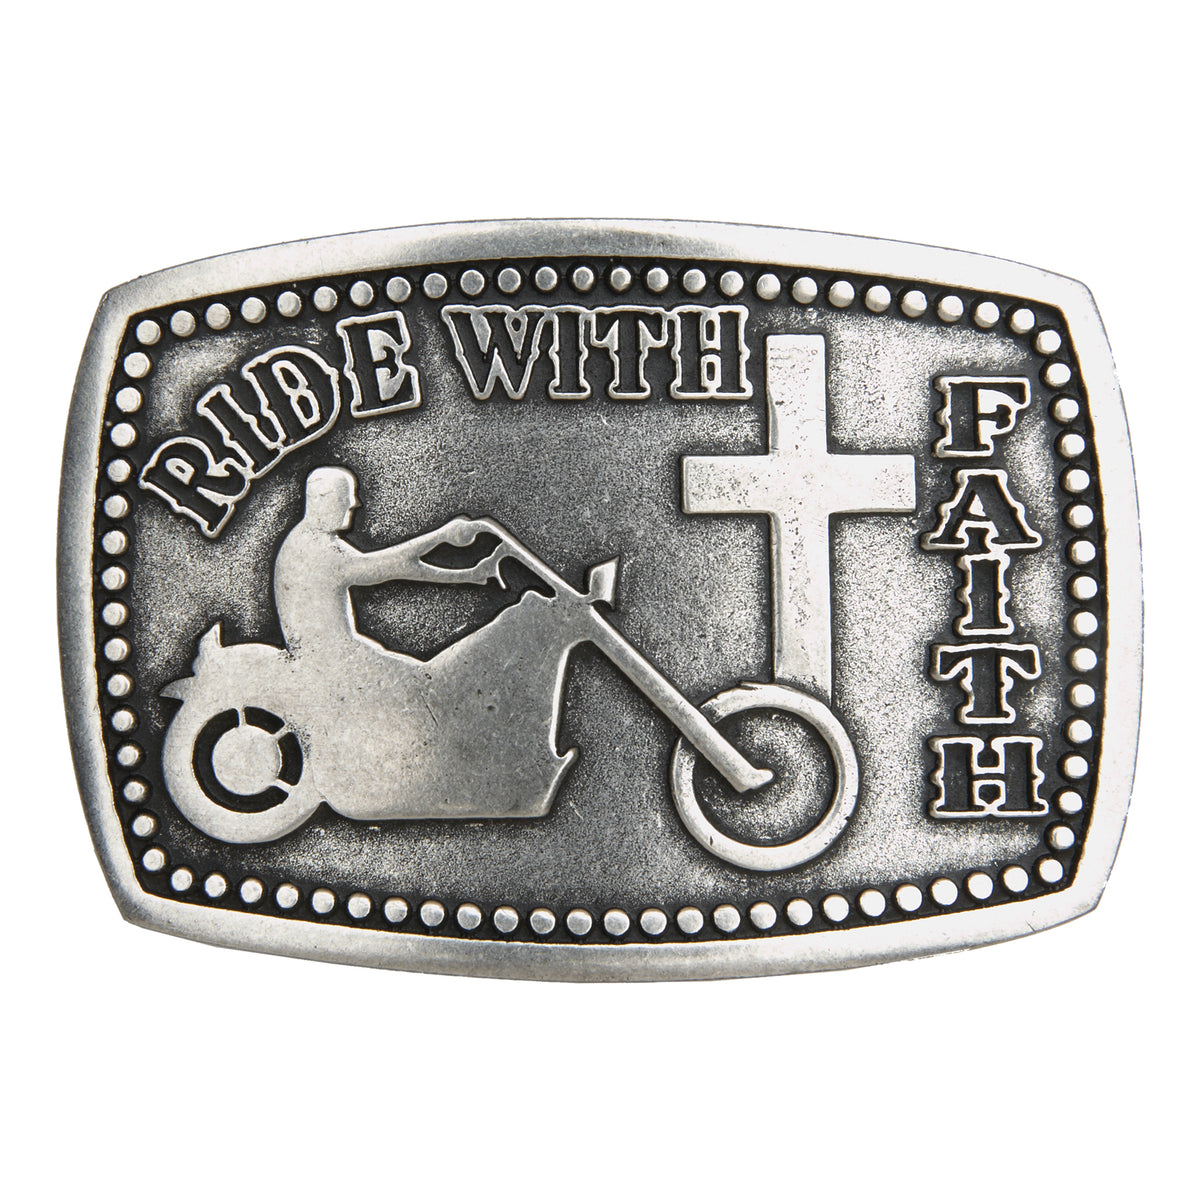 Ride with Faith Buckle